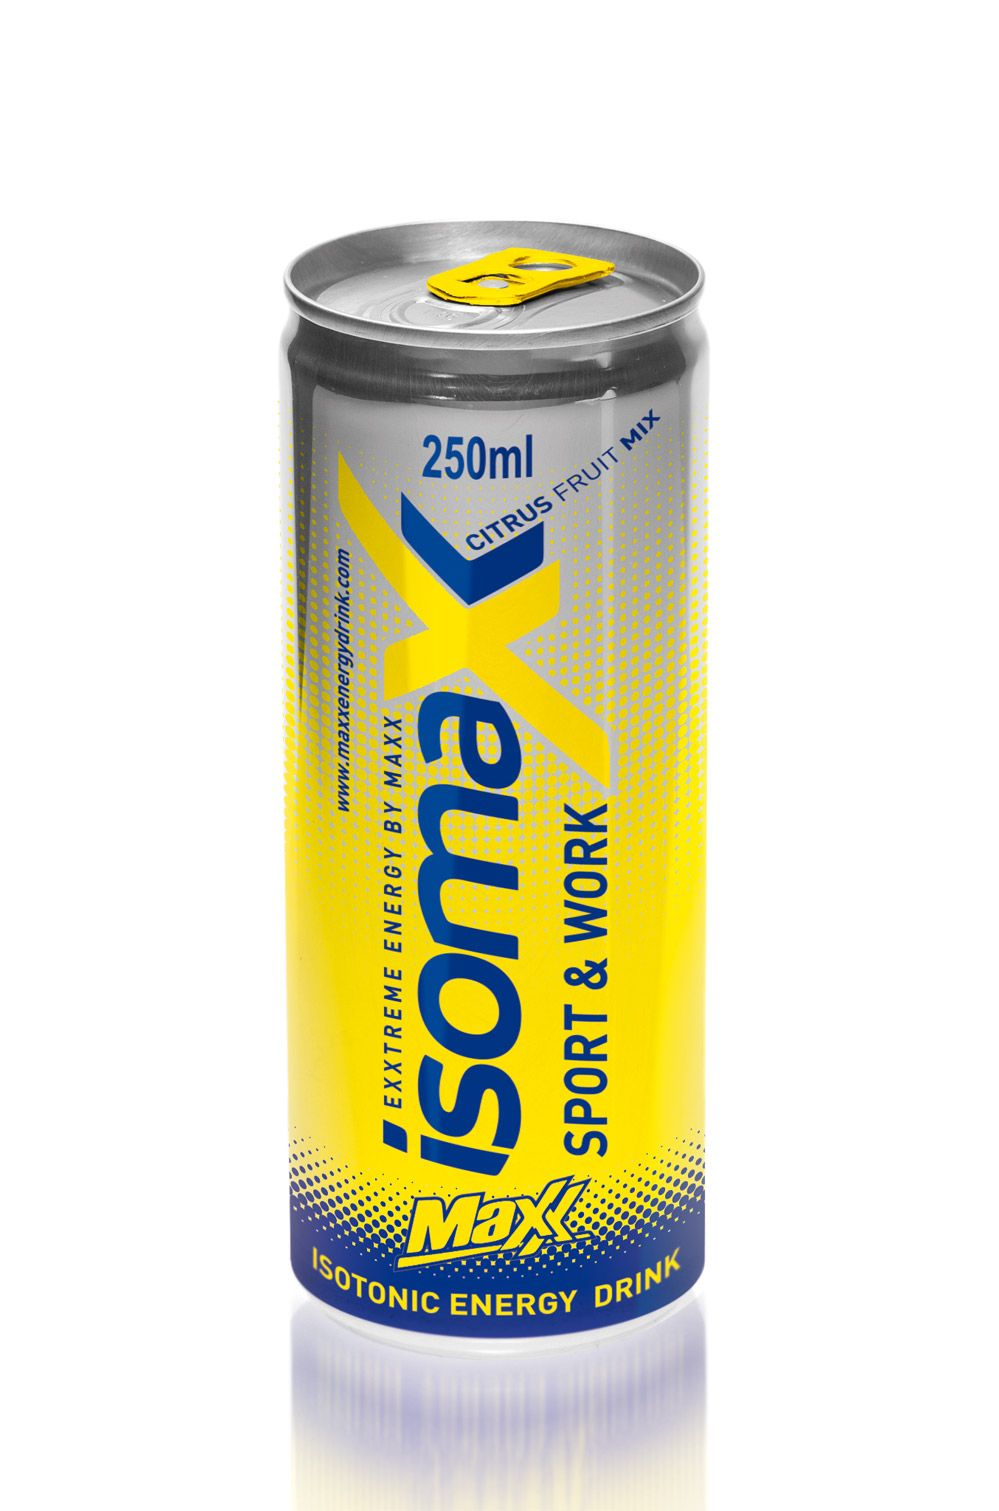 Maxx Isomaxx 250 ml - citrus fruit mix